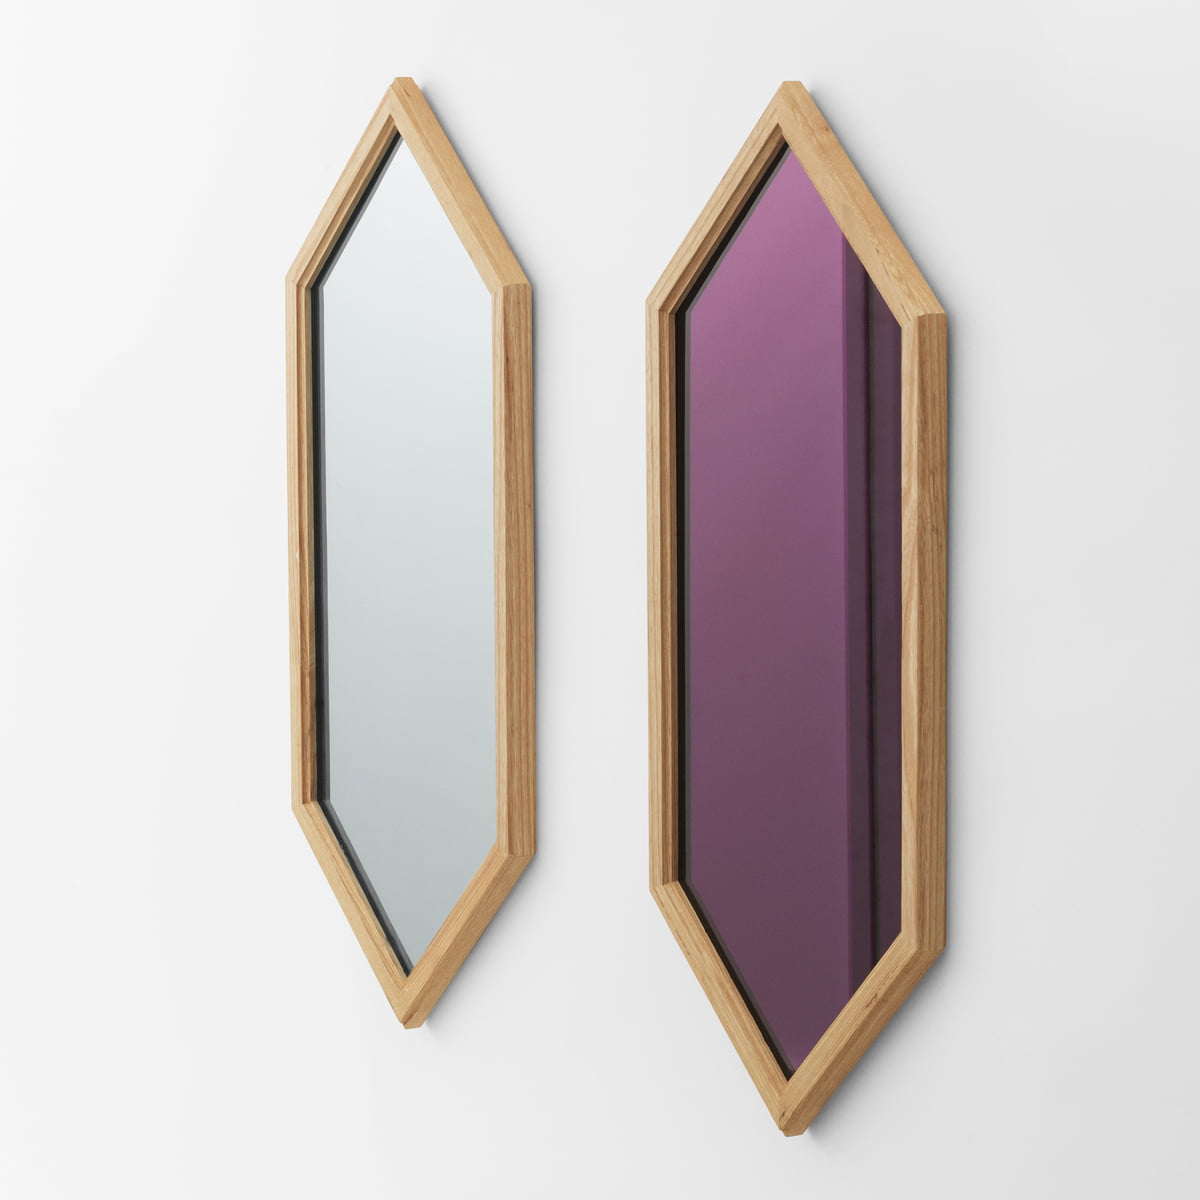 Lust mirror 70 x 29 cm by normann copenhagen for Miroir 70 x 70